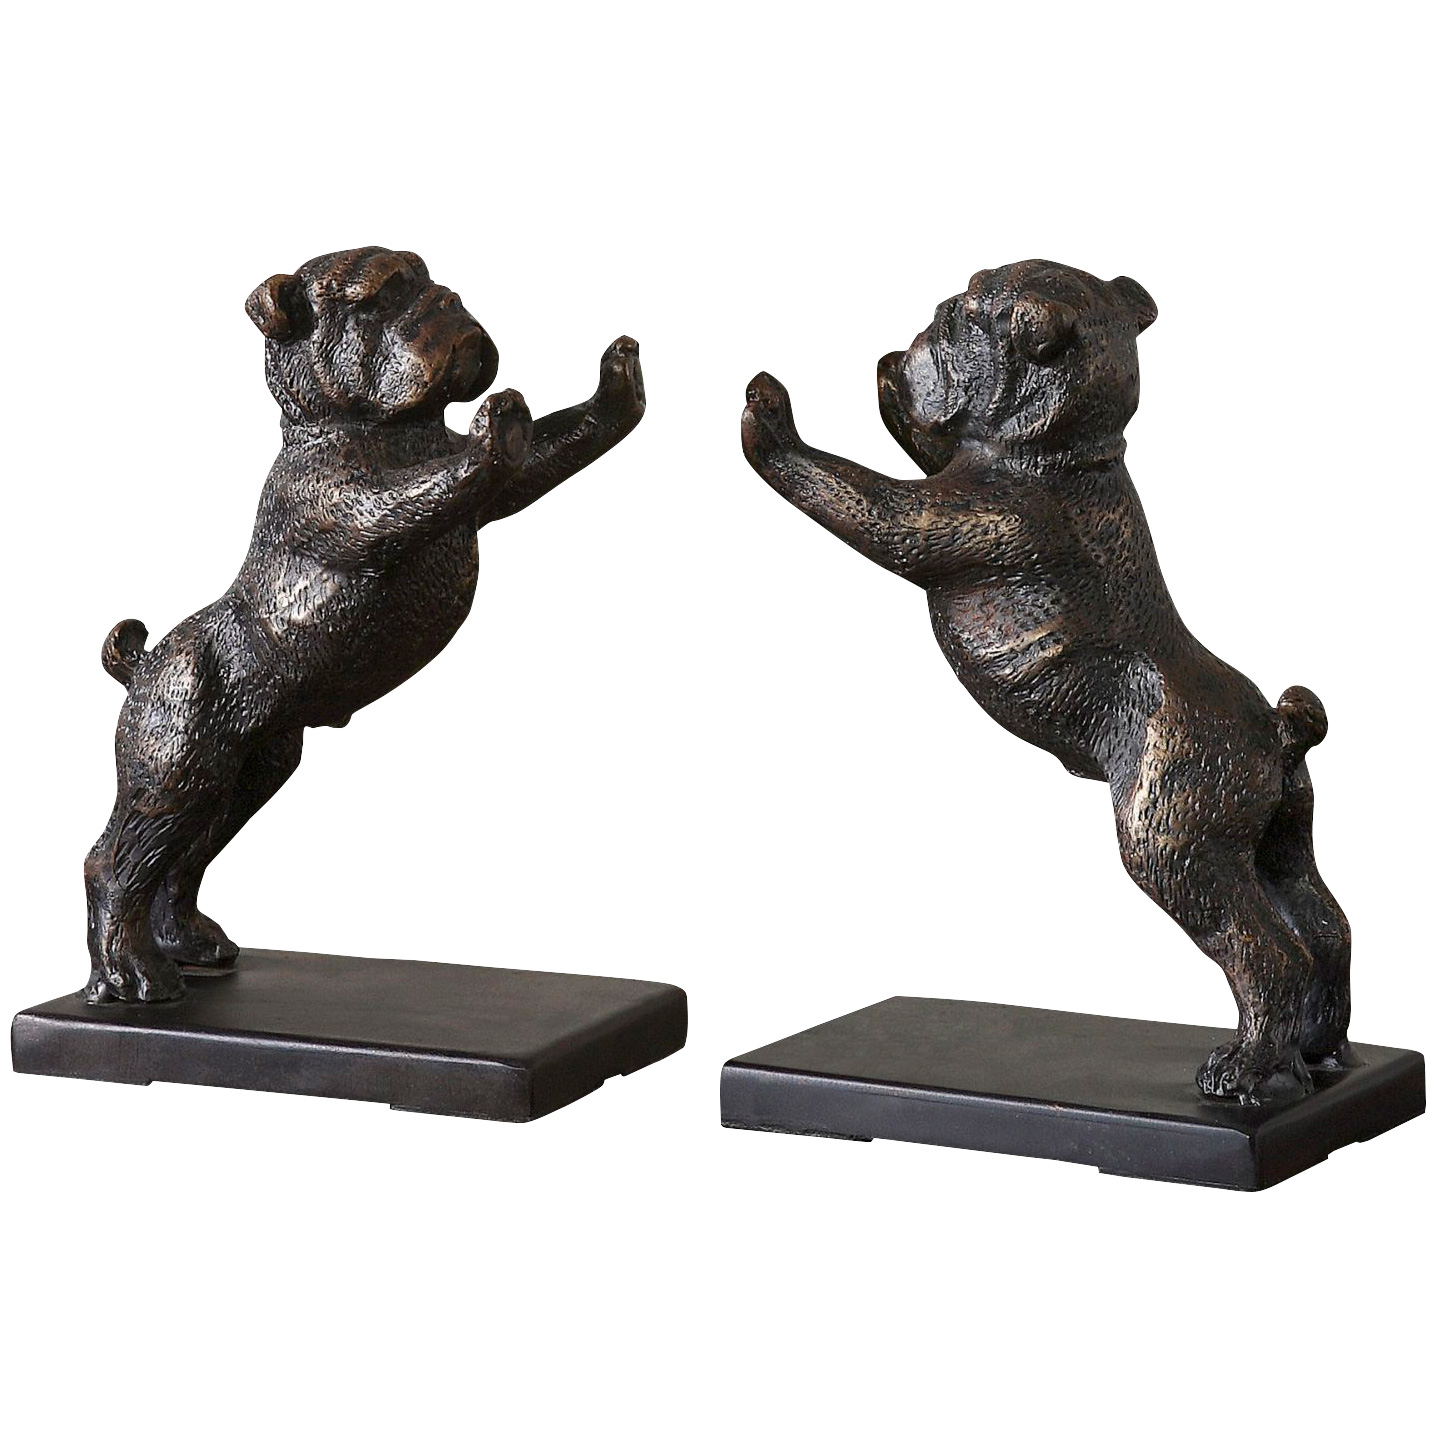 Uttermost | Bulldog Cast Iron Bookends | Gray